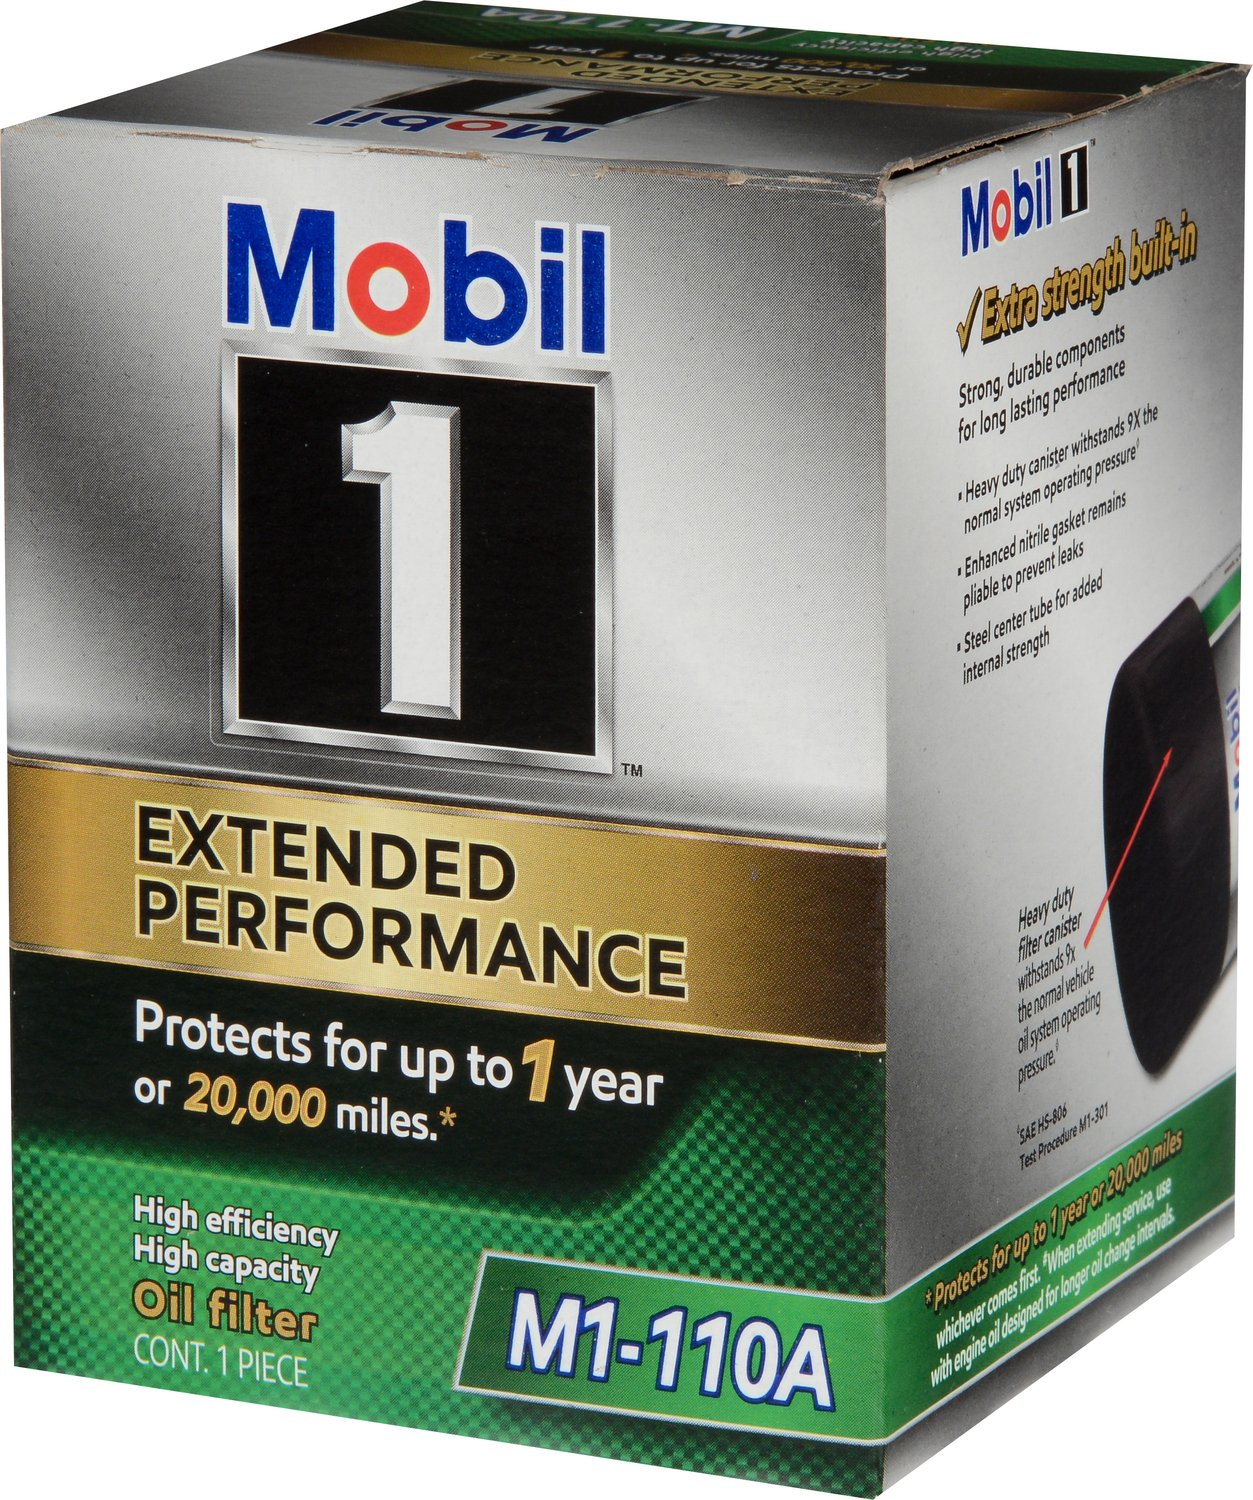 Mobil 1 M1-110A Extended Performance Oil Filter